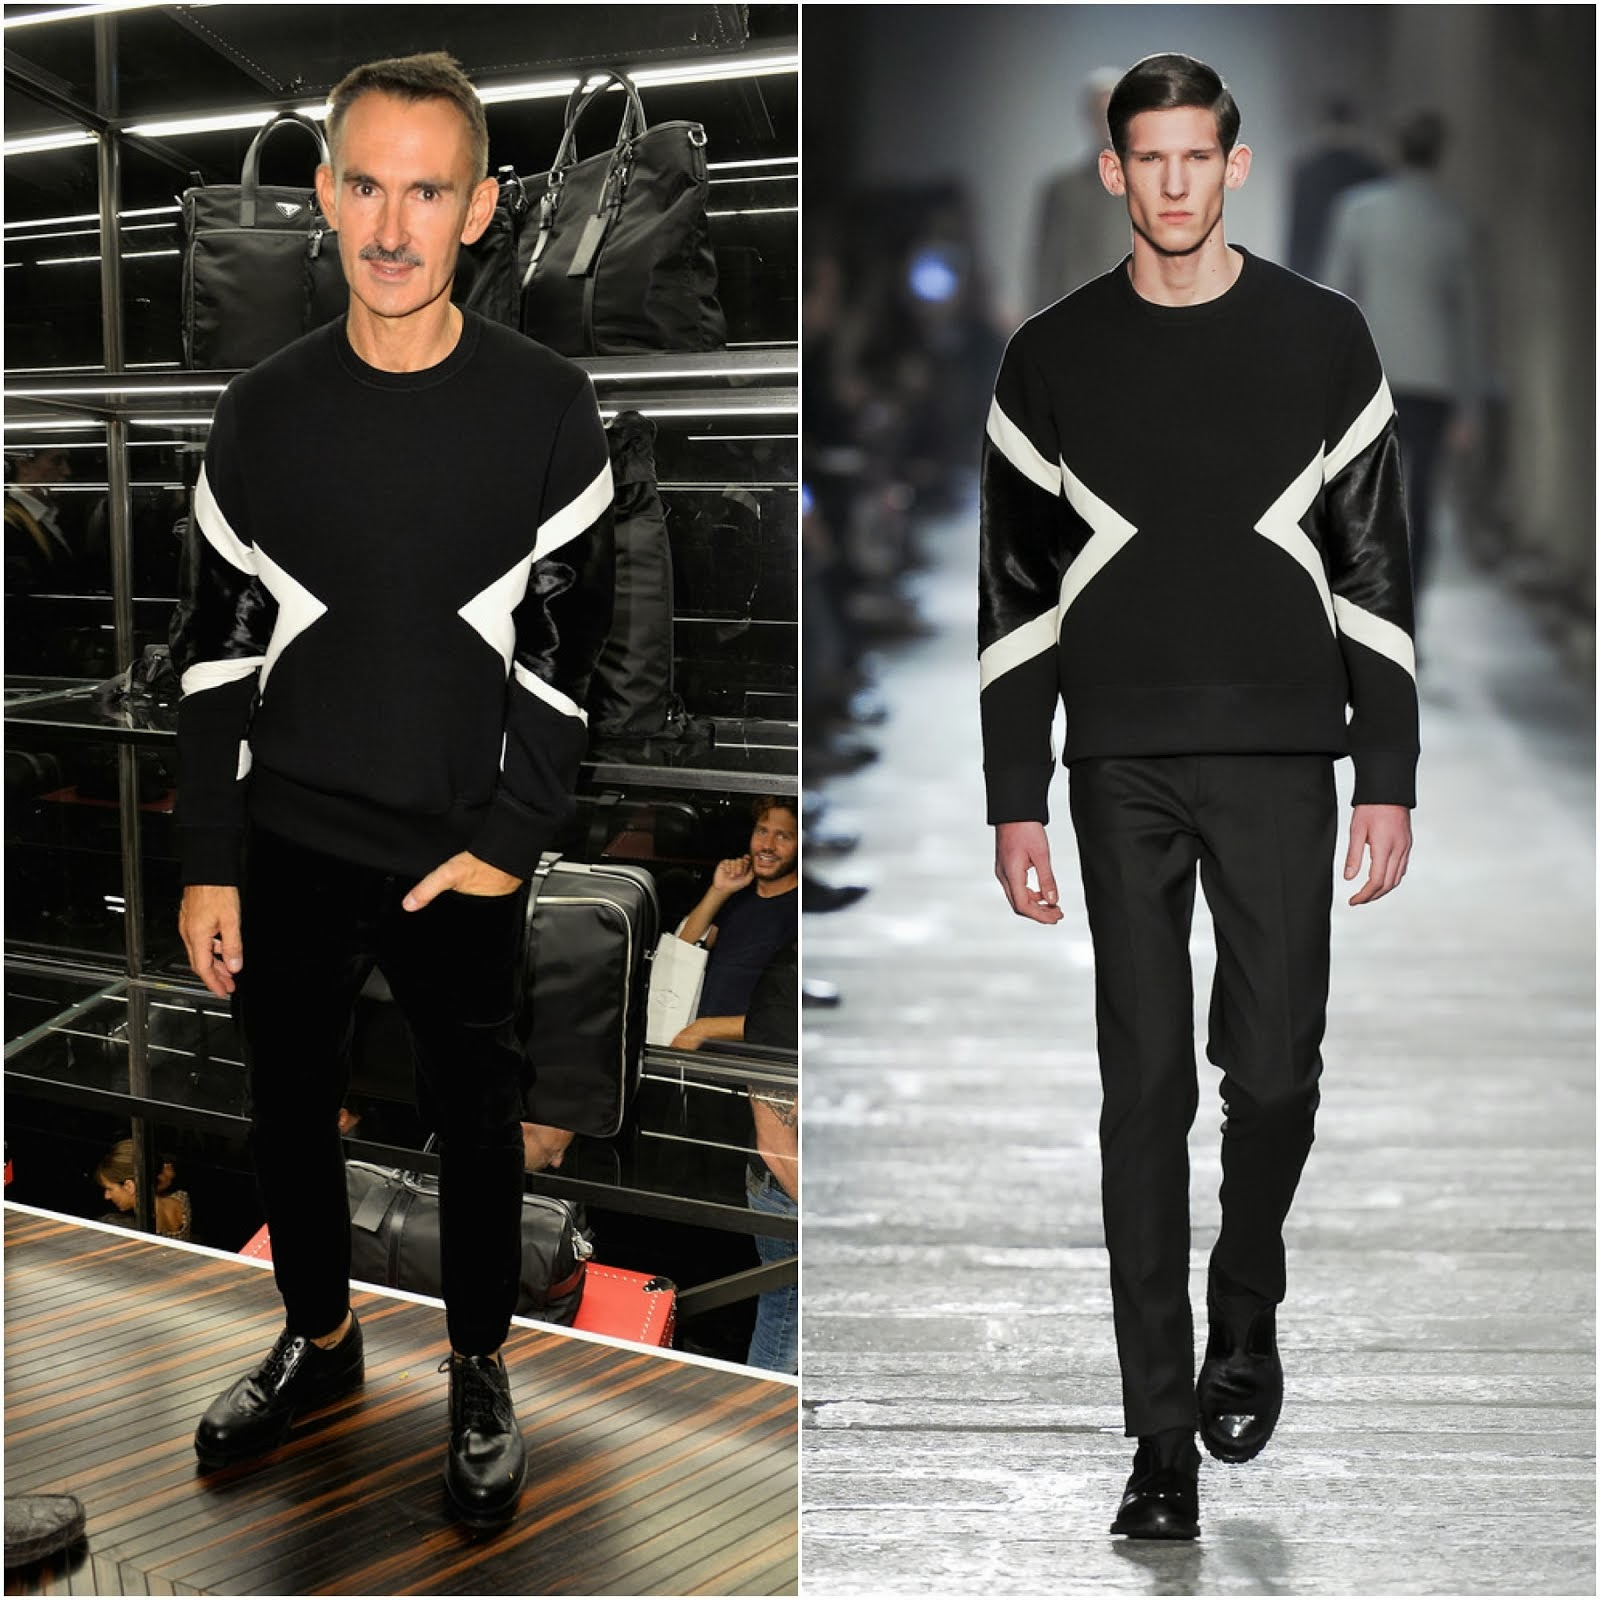 00O00 Menswear blog: Neil Barrett in Neil Barrett - Prada Galleria And Montenapoleone Party, Milan Fashion Week